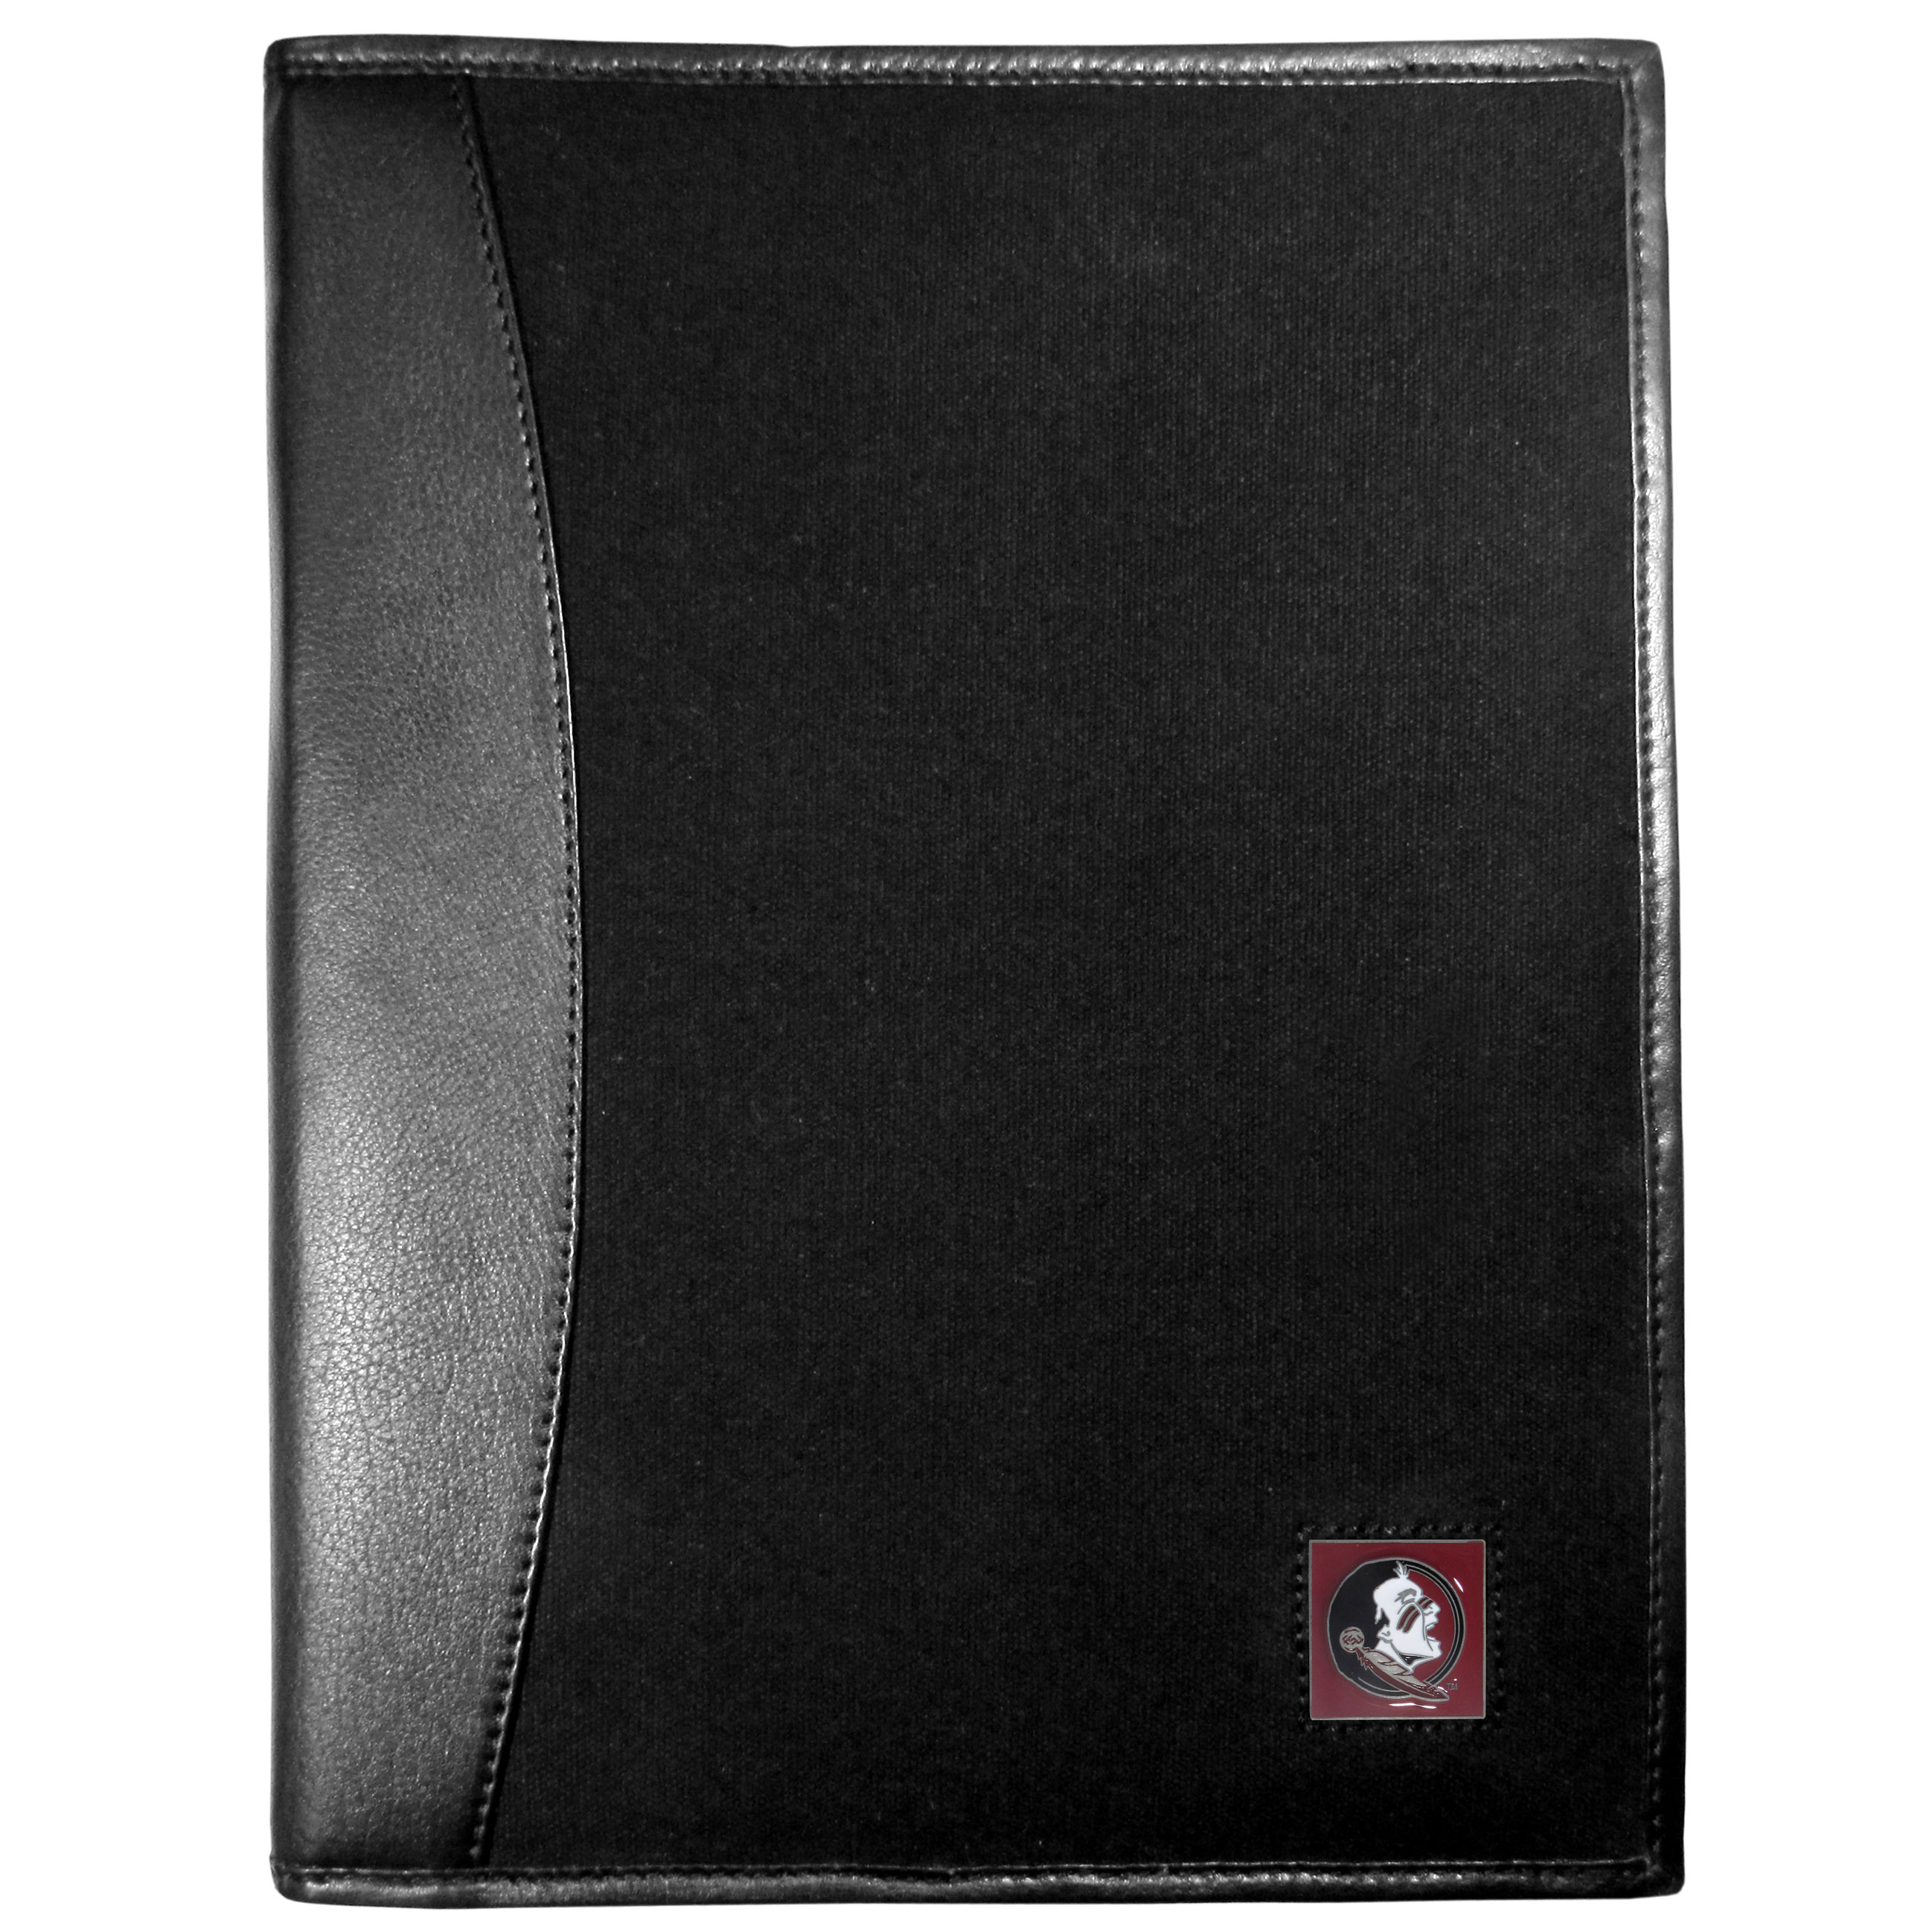 Florida St. Seminoles Leather and Canvas Padfolio - Our leather and canvas padfolio perfectly blends form and function. The attractive portfolio is bound in fine grain leather with an attractive canvas finish and the interior is a soft nylon. This high quality business accessory also features a fully cast metal Florida St. Seminoles emblem that is subtly set in the corner of the organizer. It is packed with features like 6 card slots for badges, business cards, hotel keys or credit cards and ID with a large pocket for loose papers and a writing tablet slot making it a must-have for the professional on the go.